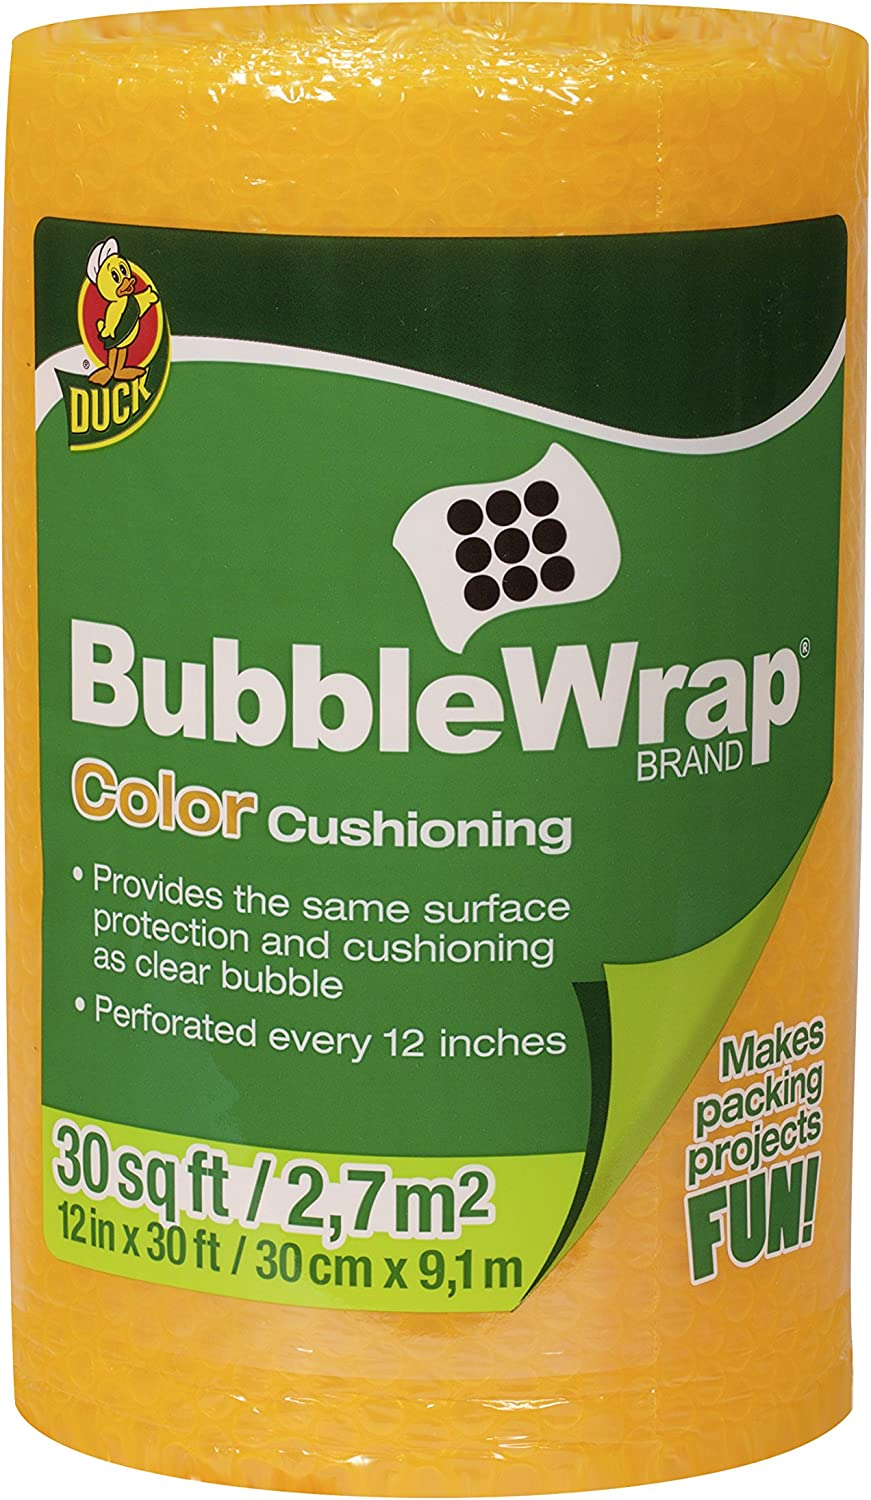 Orange Duck Brand Bubble Wrap Color Cushioning Single Roll 12 Inches Wide x 30 Feet Long 282477